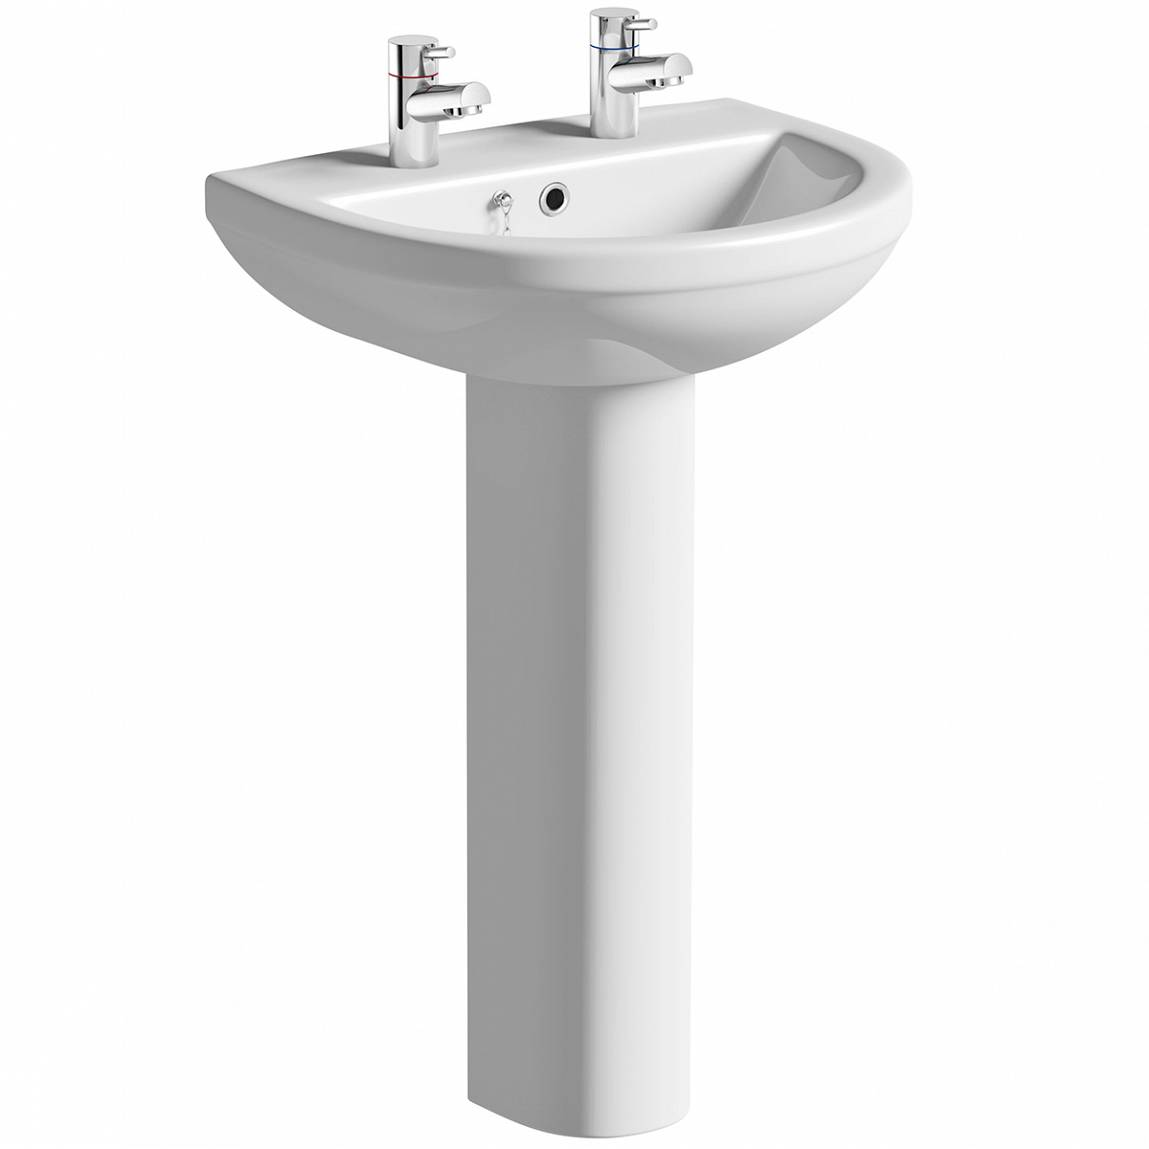 Image of Oakley 550 2TH Basin & Full Pedestal